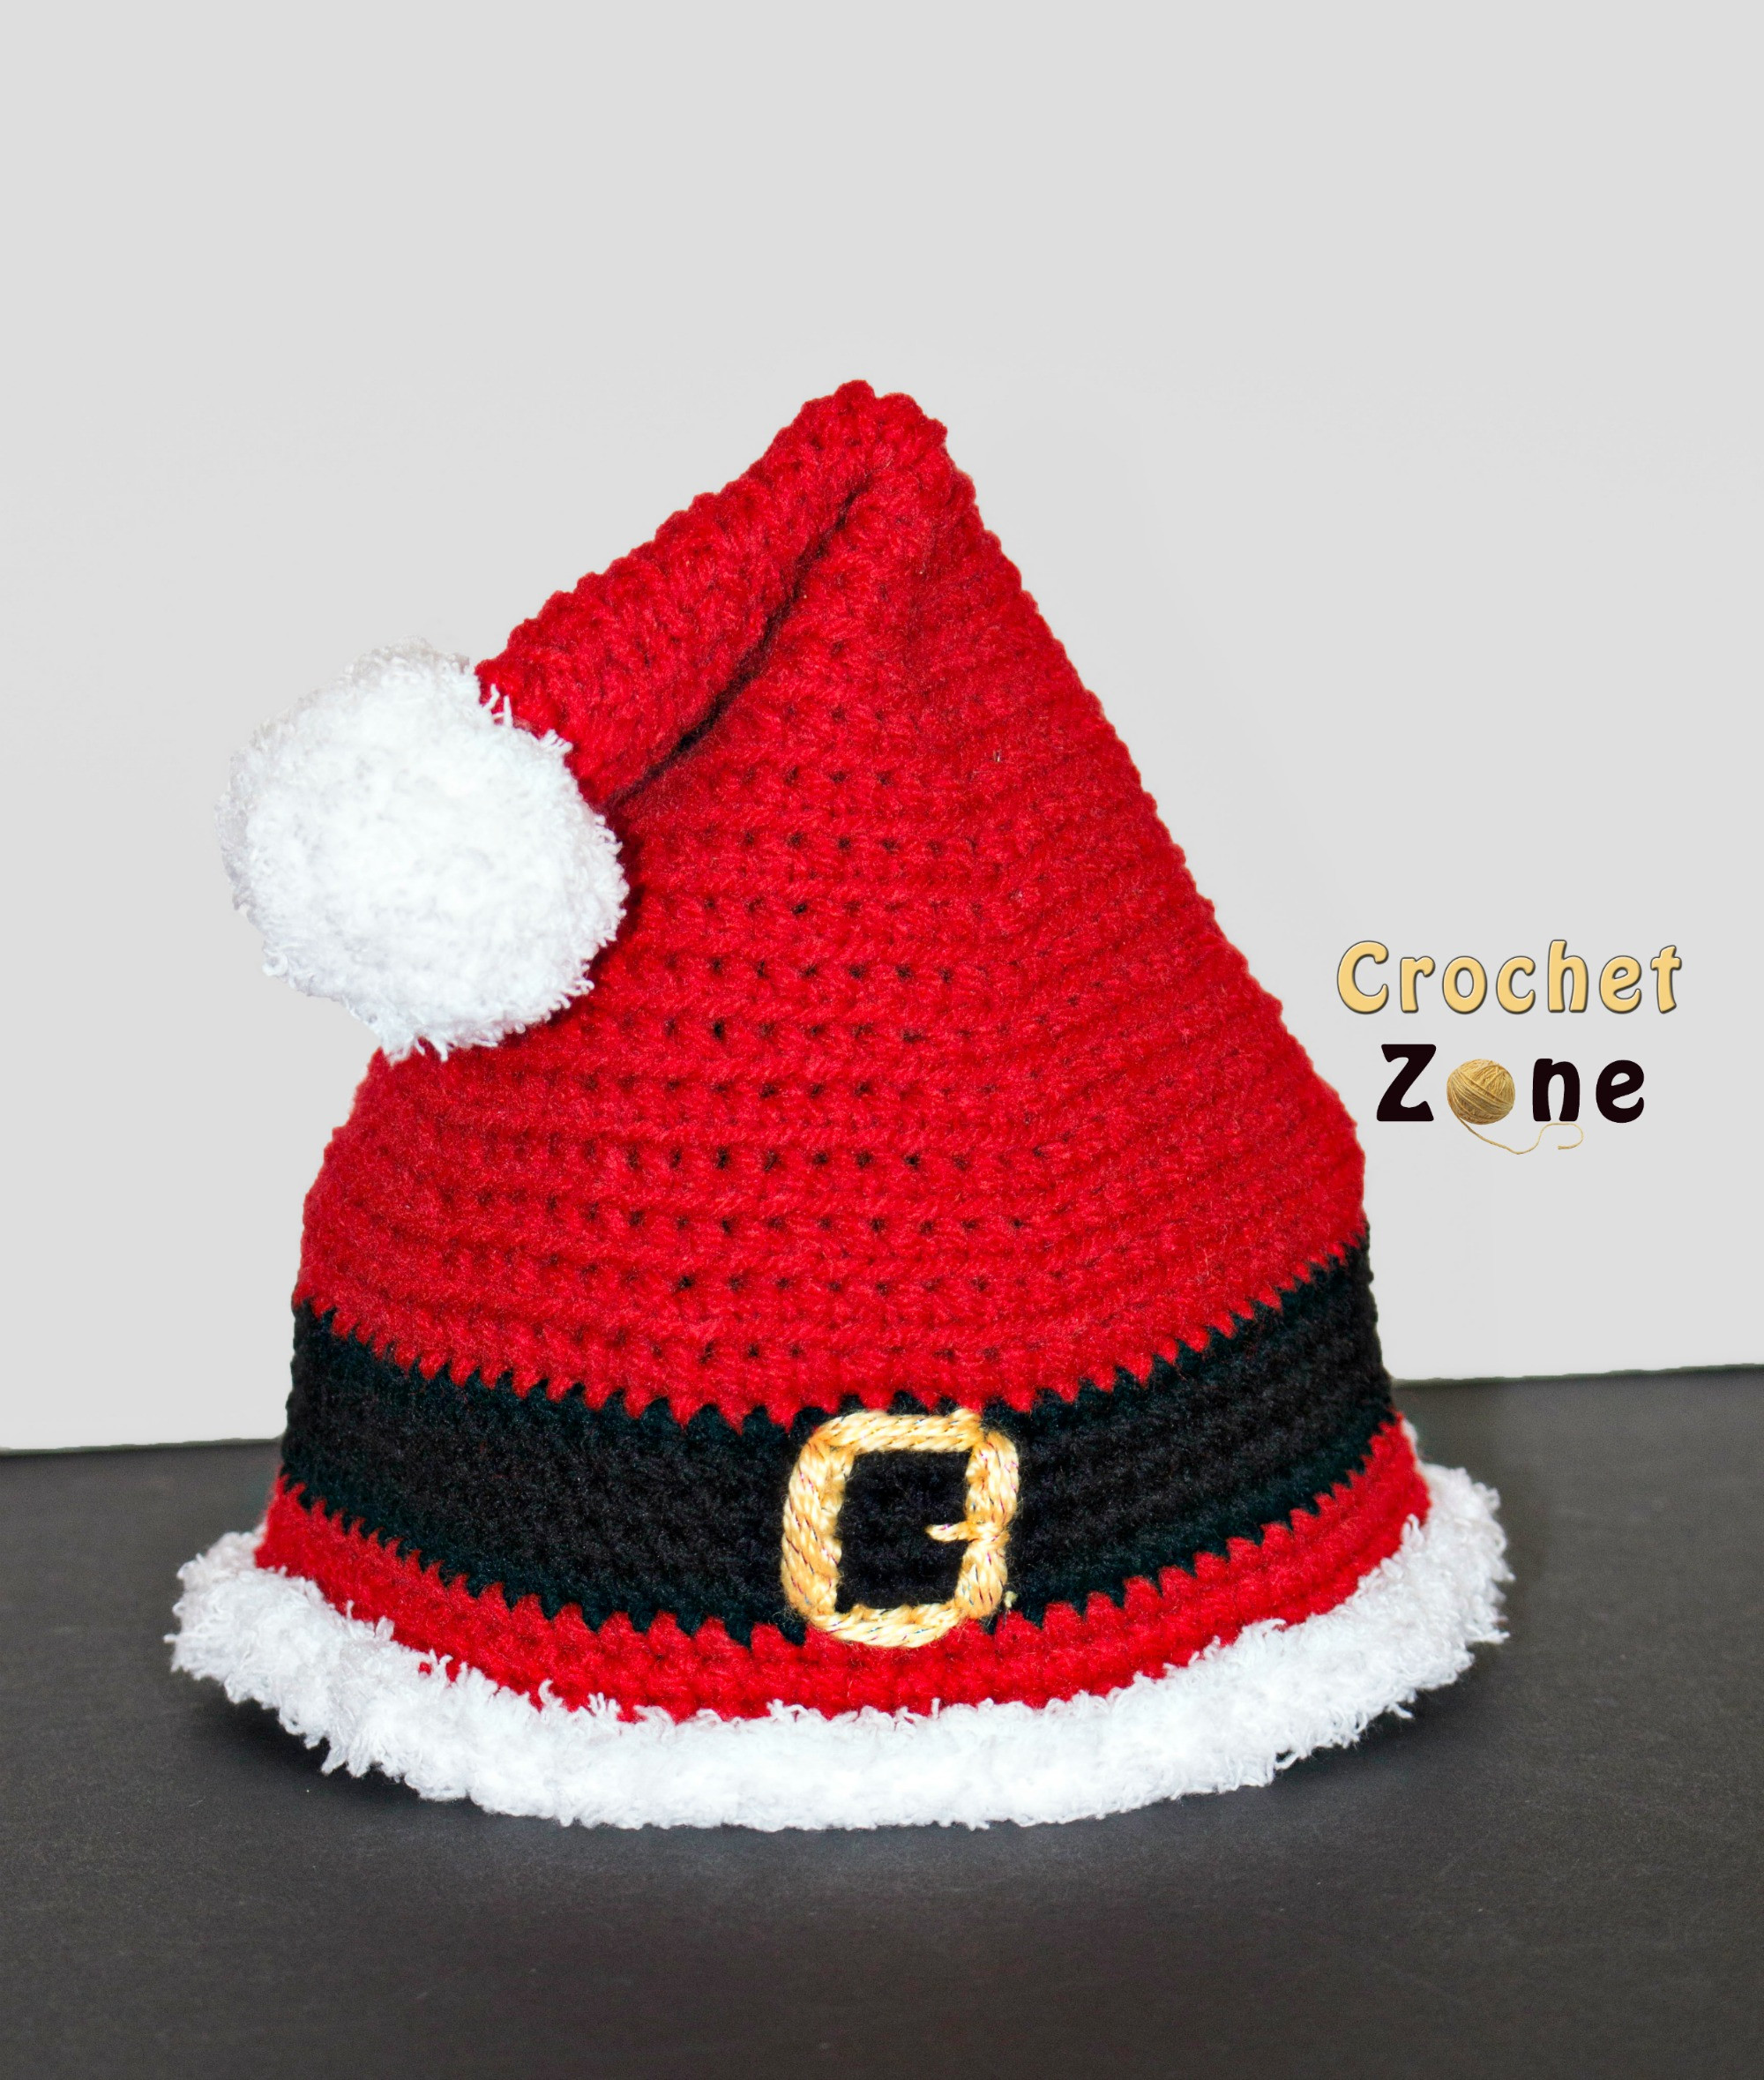 Fresh Crochet Zone All Things Crochet Santa Hat Pattern Of Unique Baby Santa Hats – Tag Hats Santa Hat Pattern